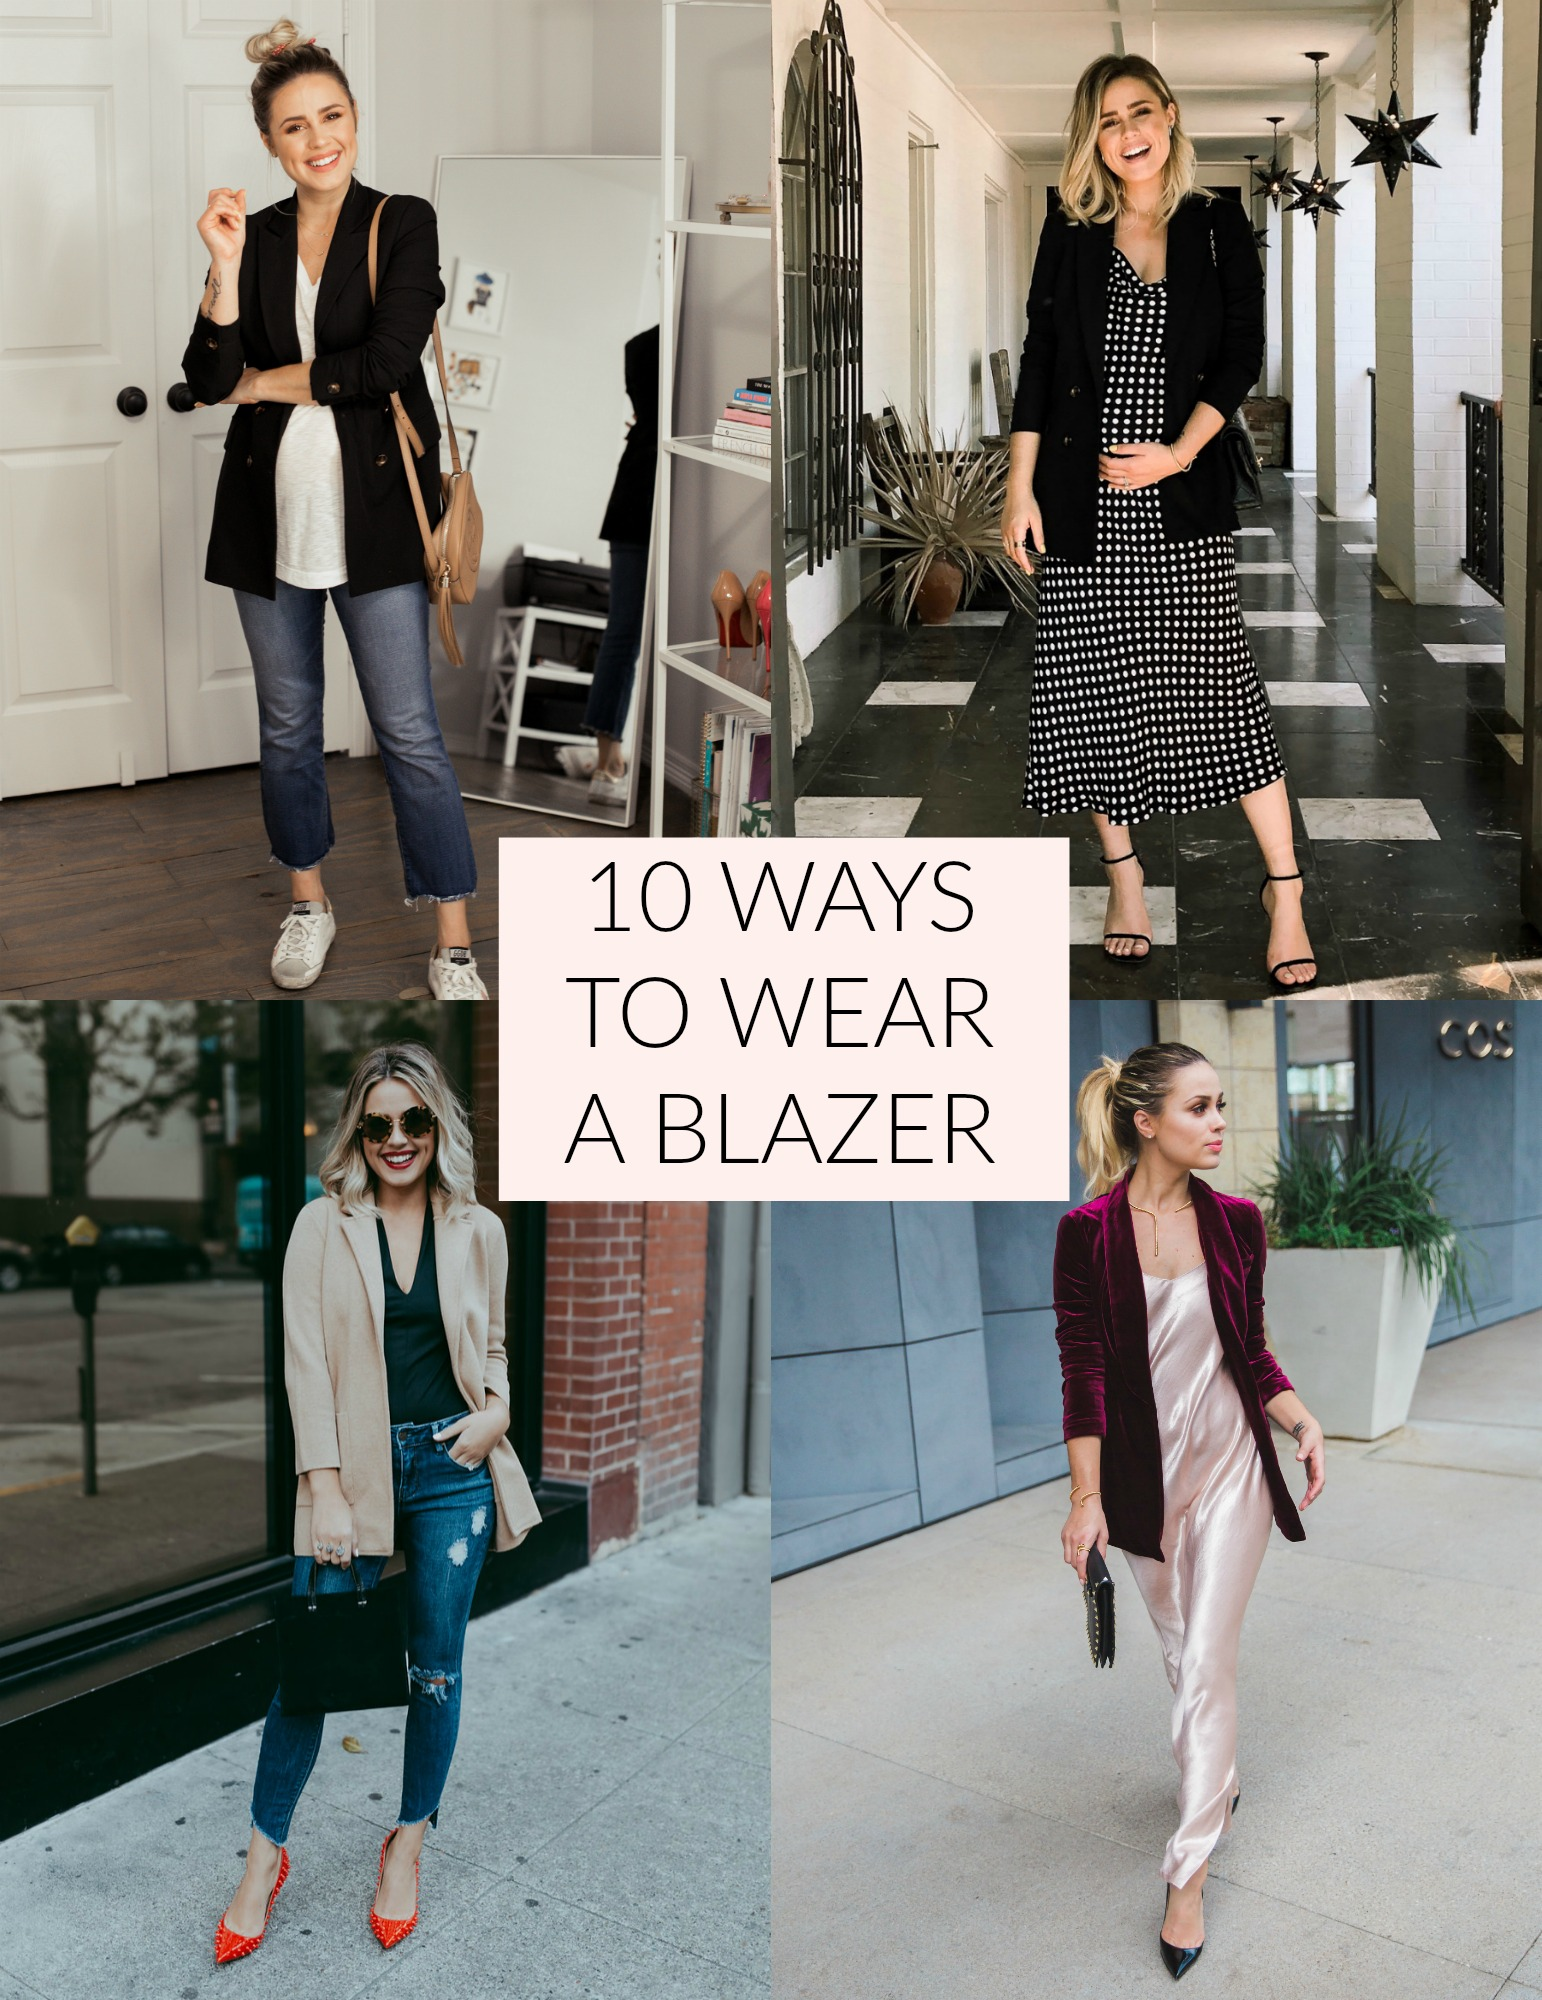 Looking for ideas on How To Wear A Blazer? Houston fashion blogger Uptown with Elly Brown shares 10 different ways to dress your blazer.